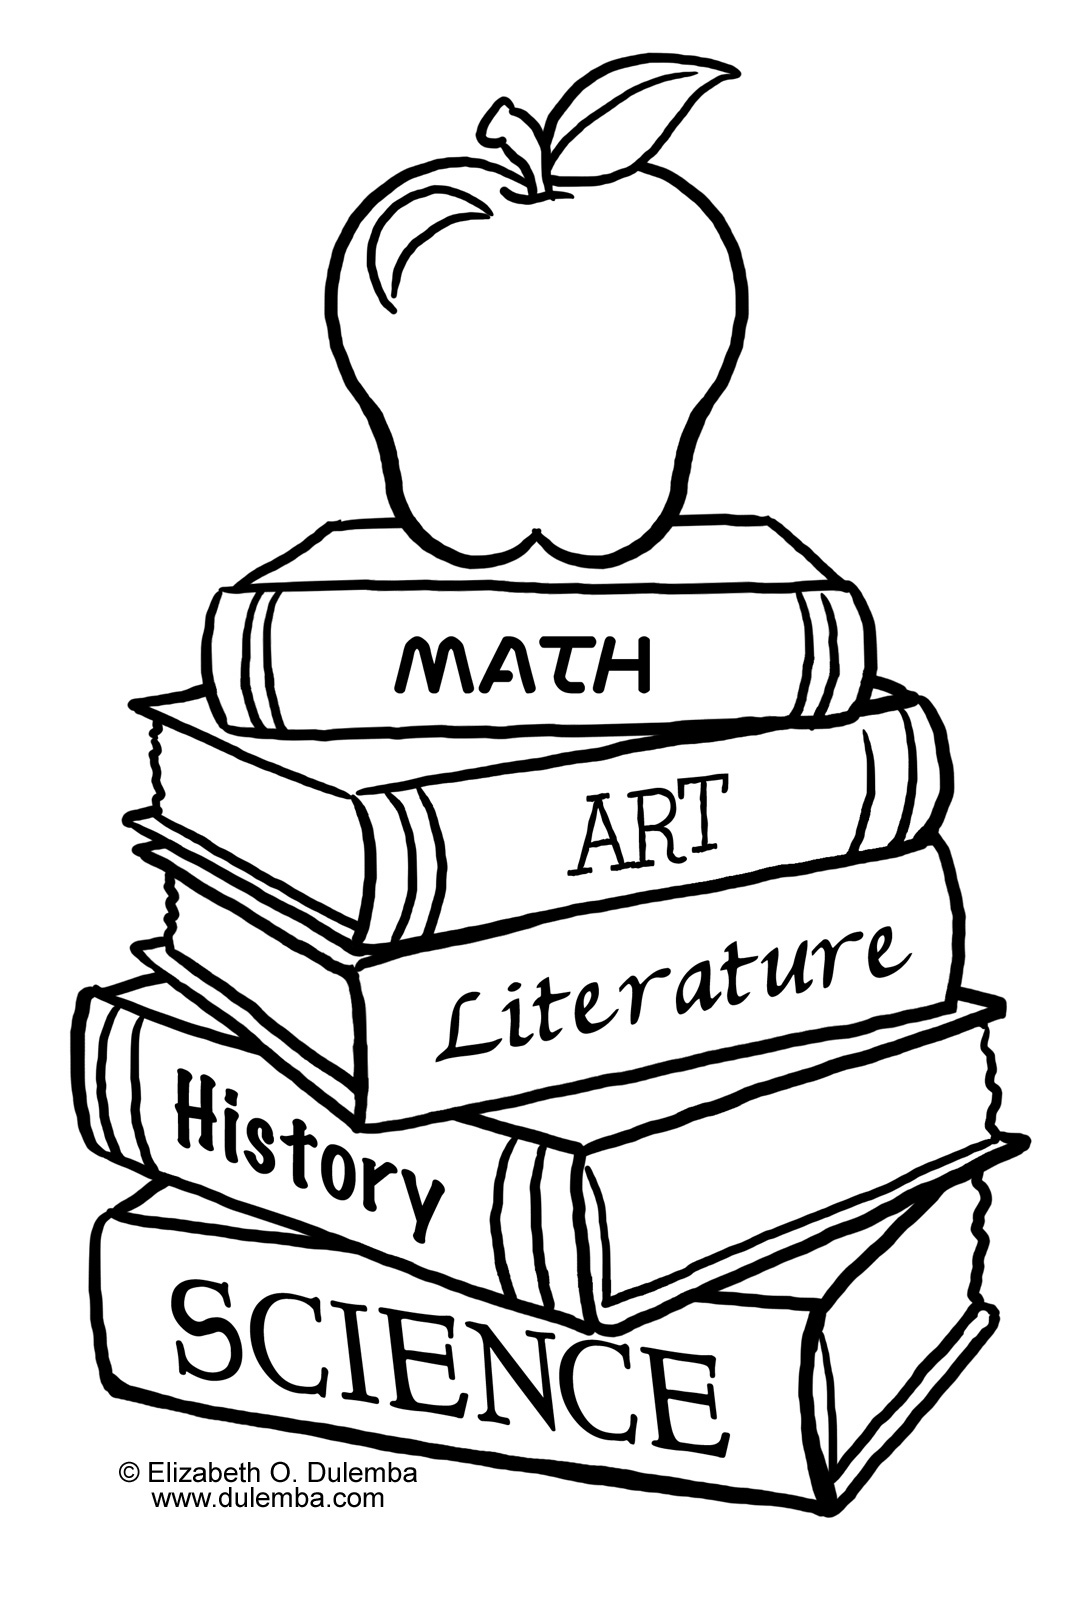 School House coloring pages, Coloring for kids, Booking